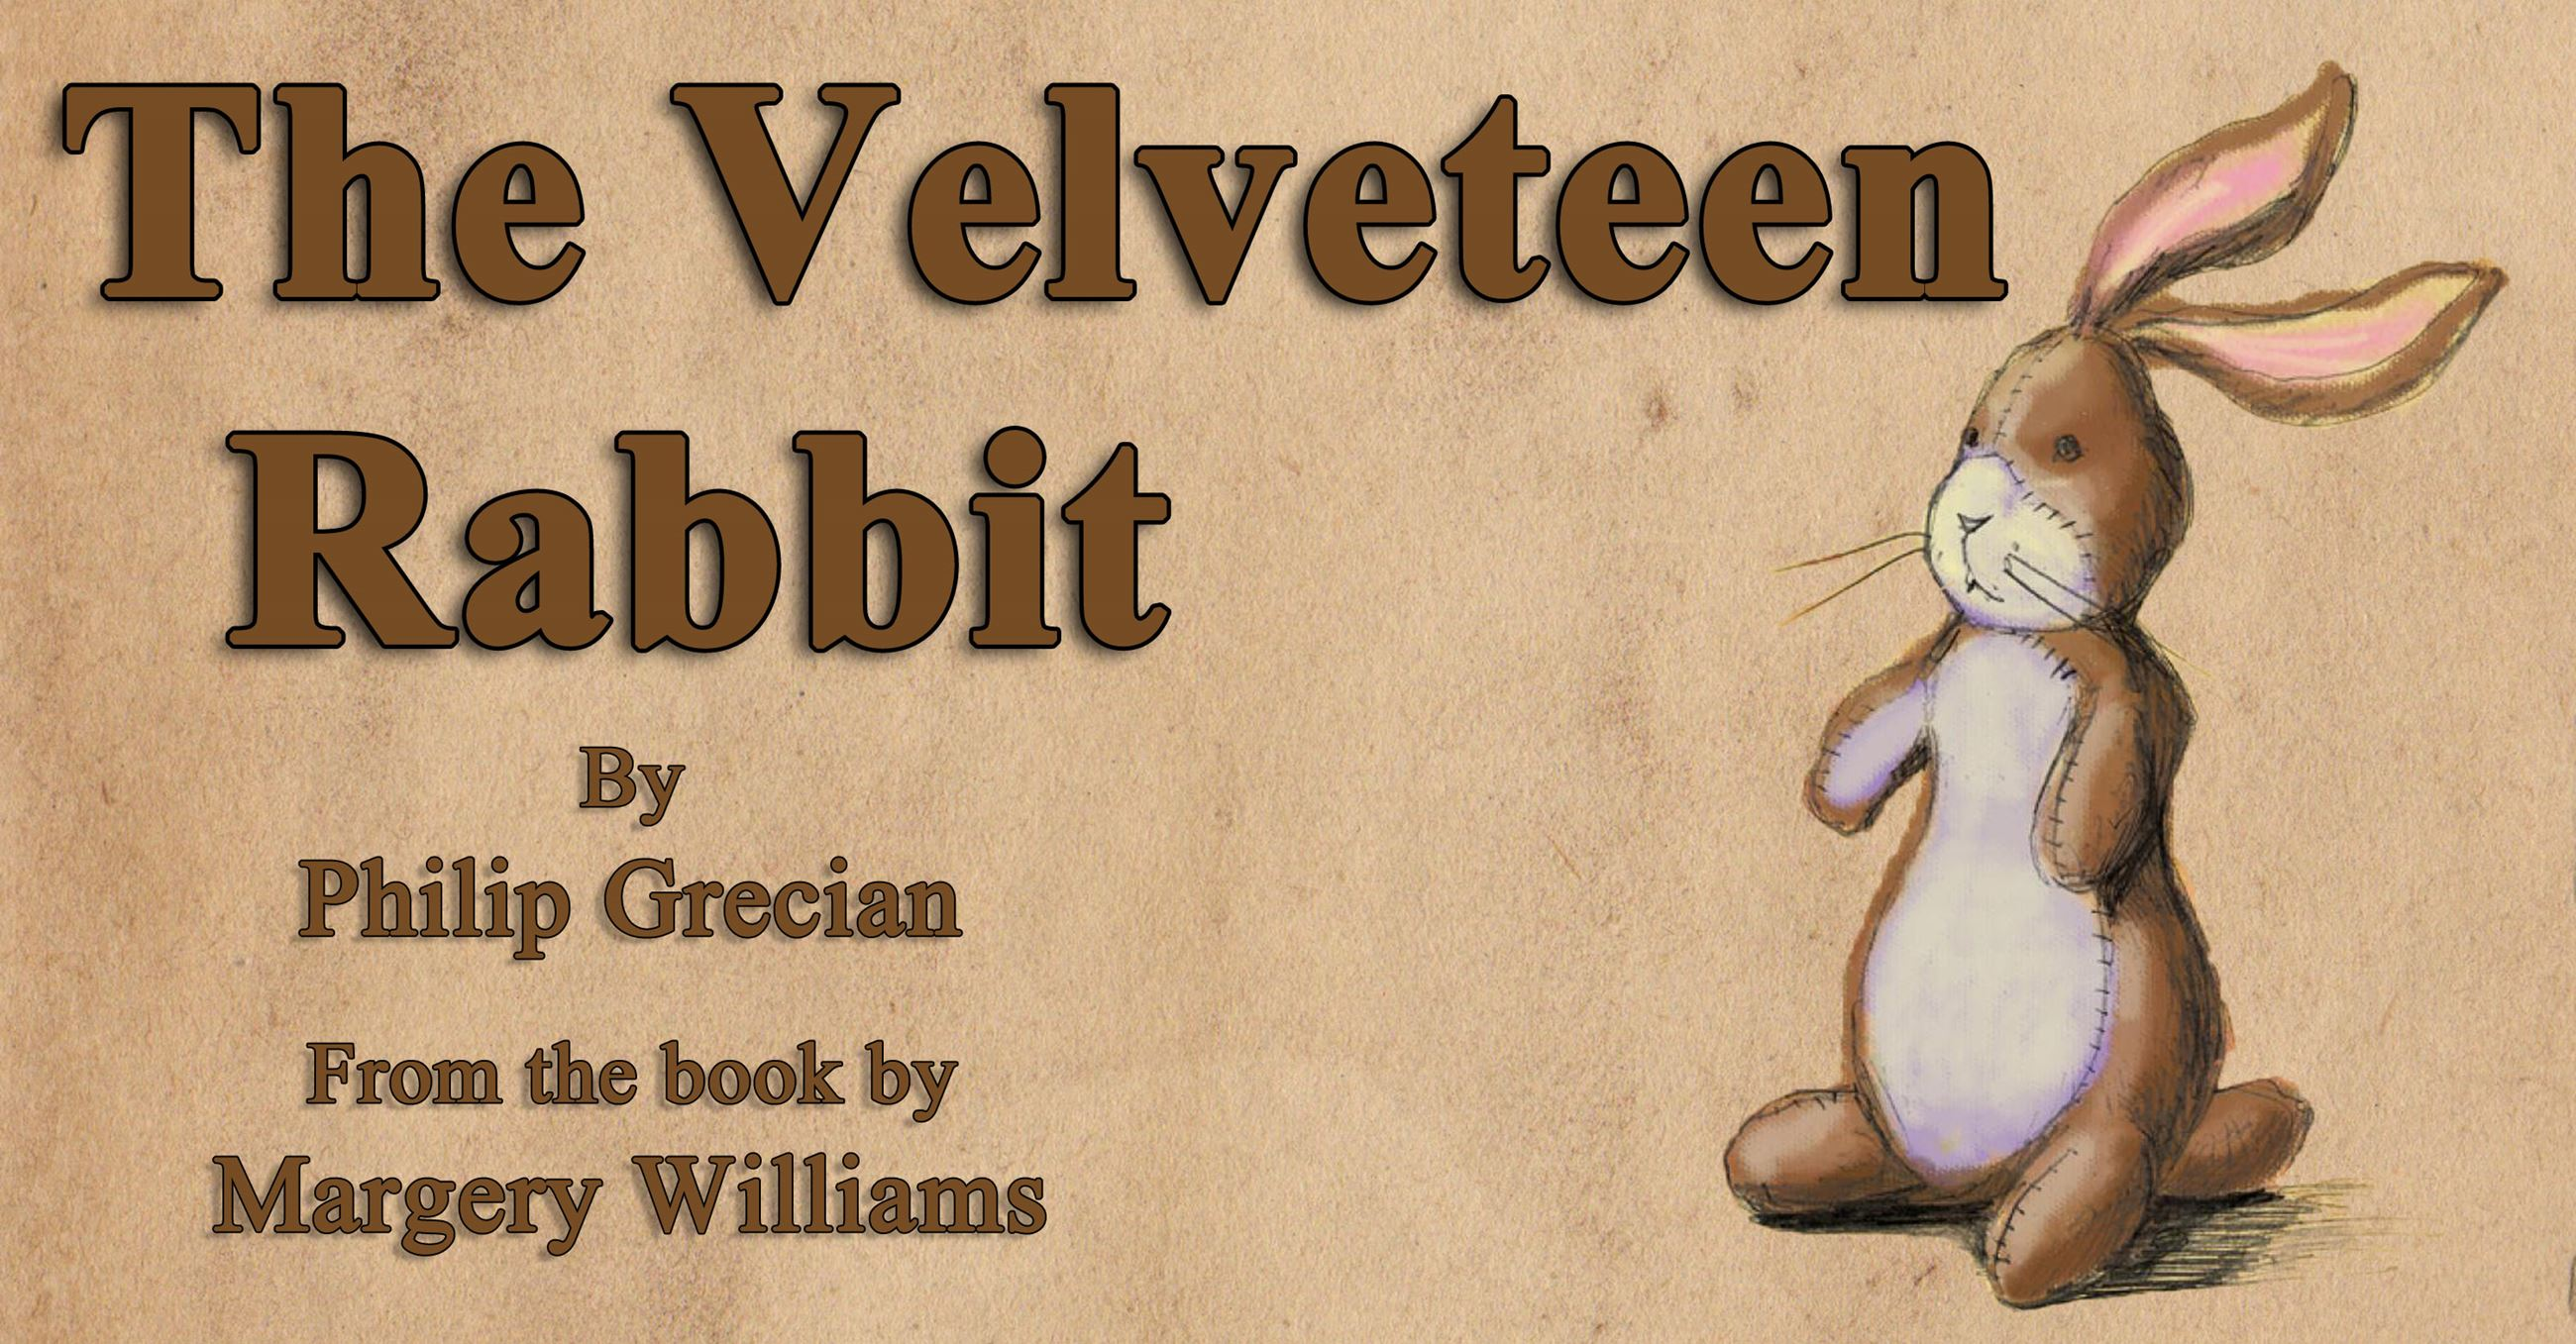 The Velveteen Rabbit Image